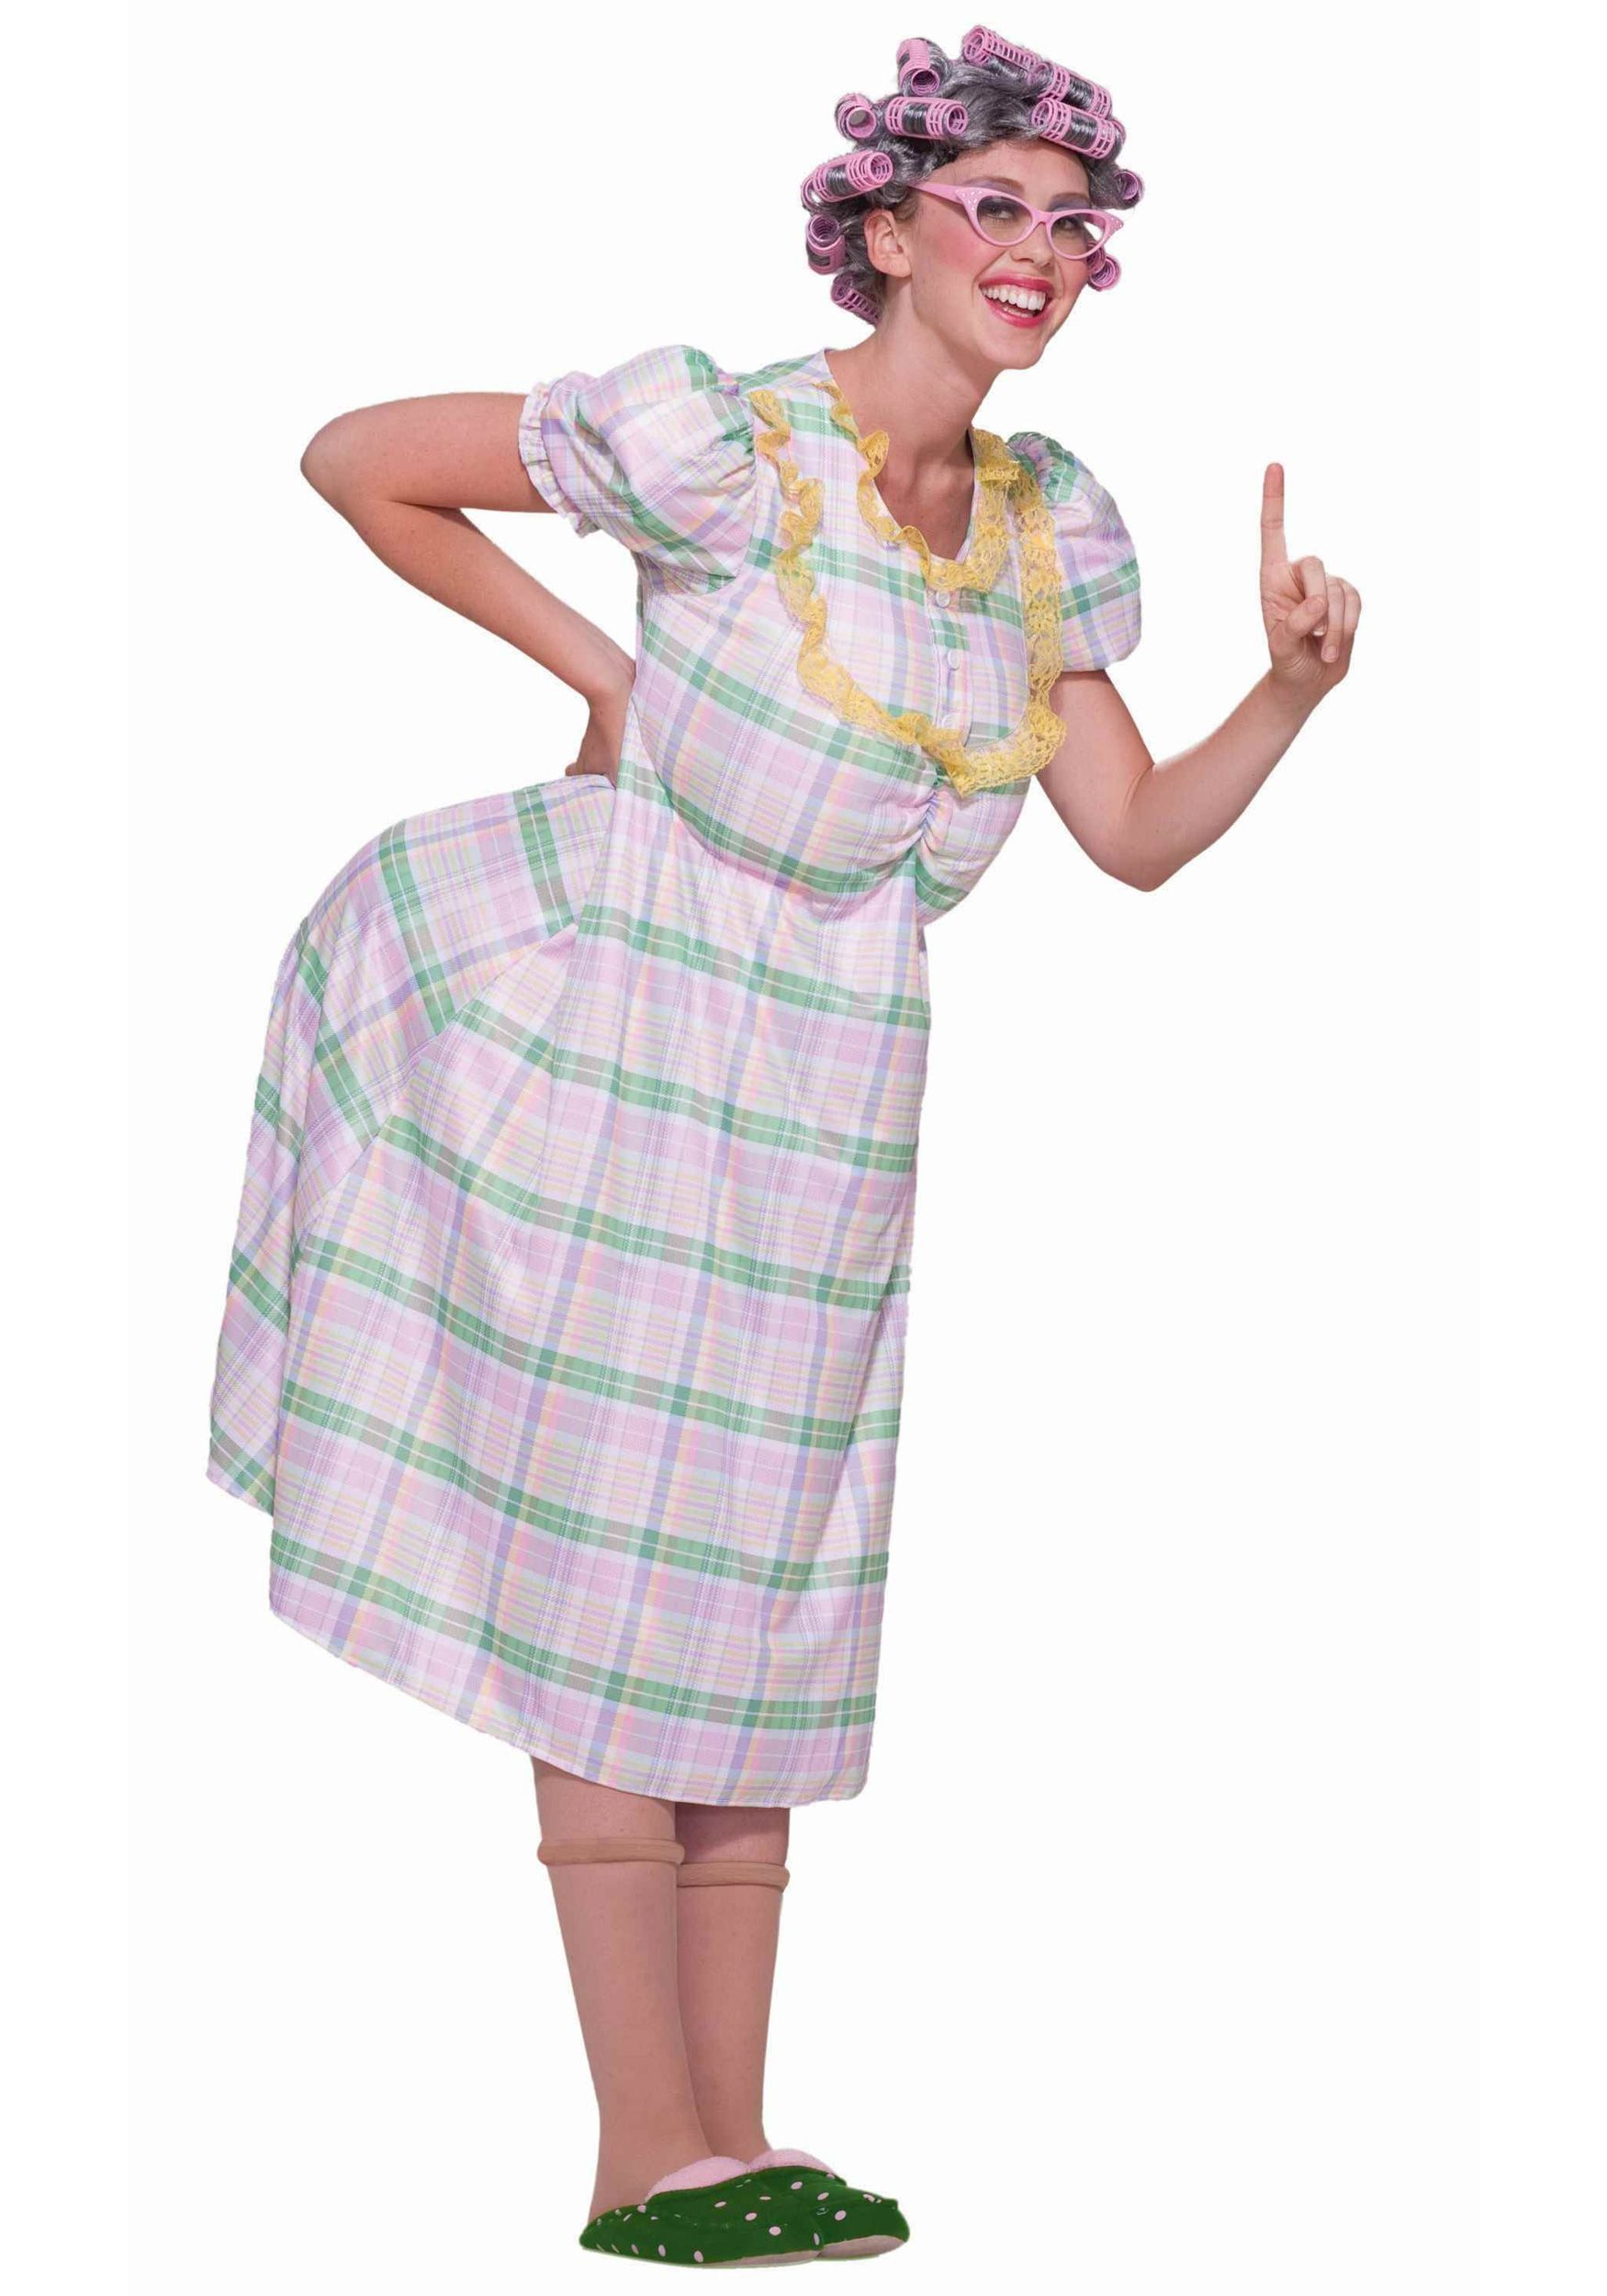 This would be a funny costume for Ian! Old lady costume